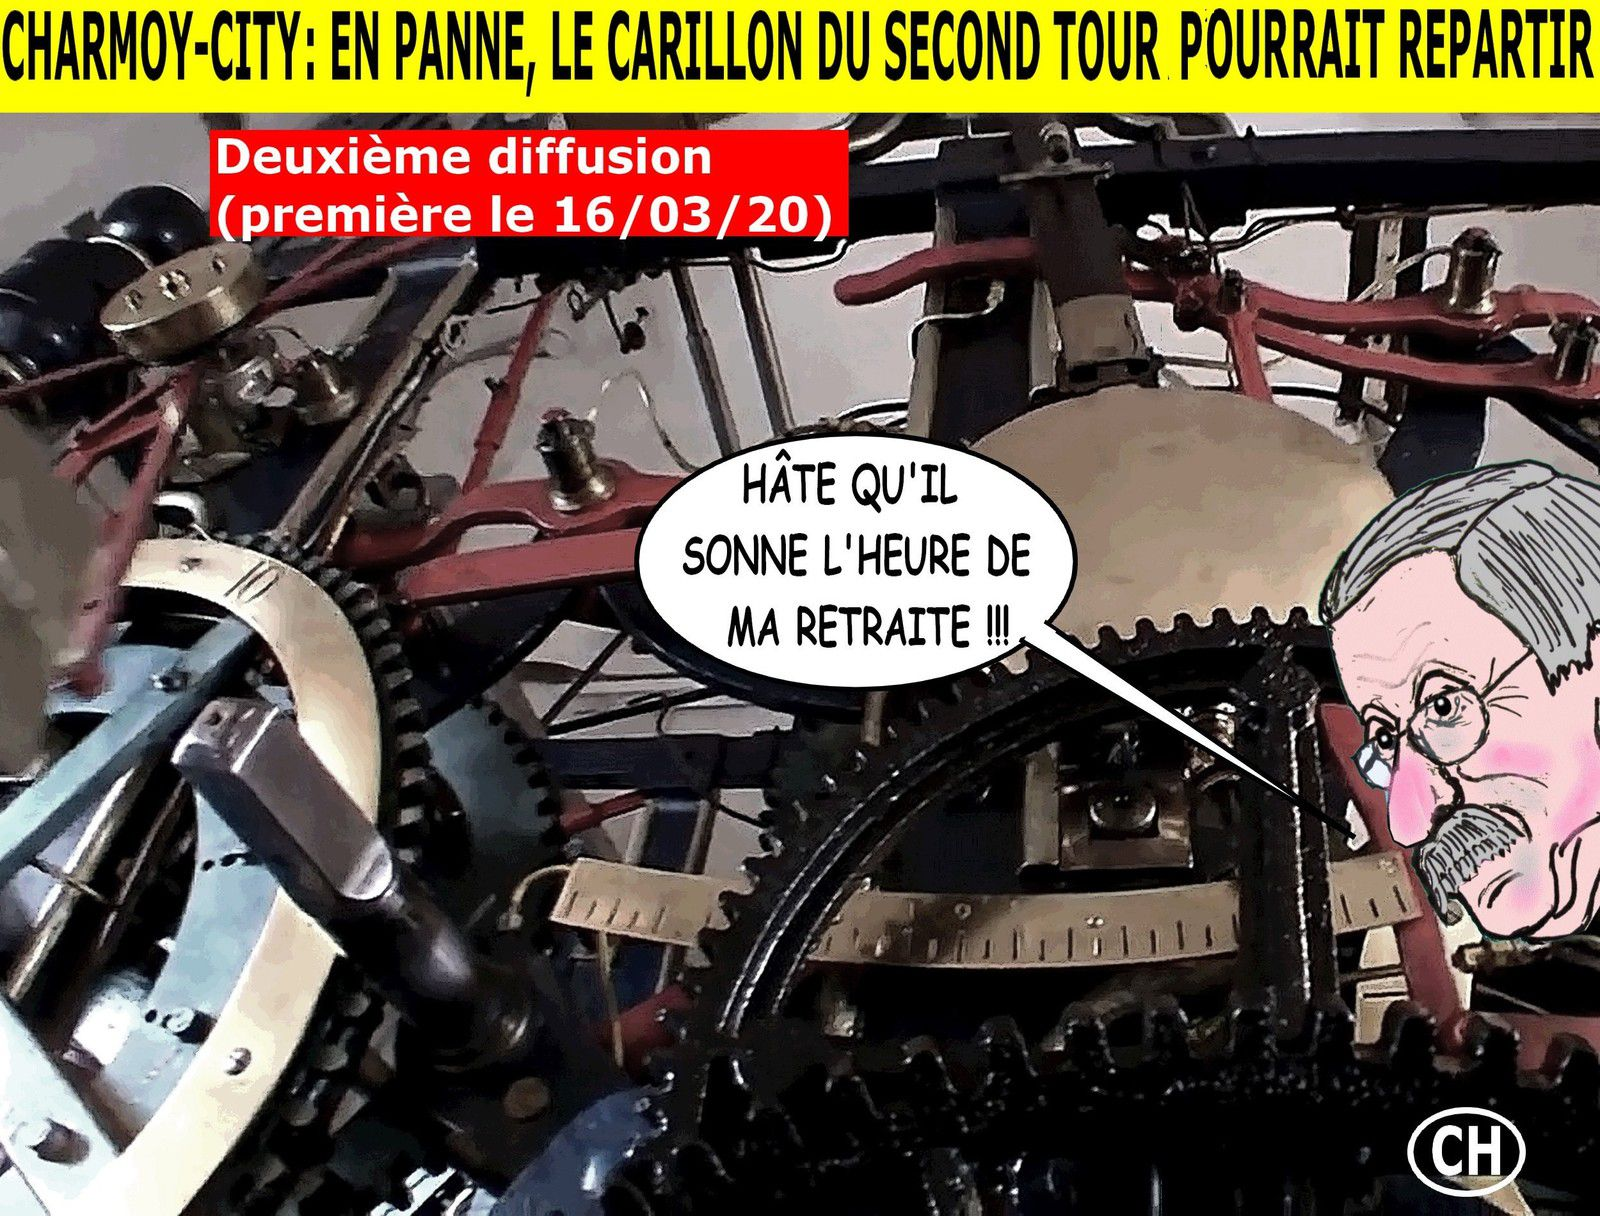 Charmoy-City,en panne, le carillon du second tour pourrait repartir.jpg